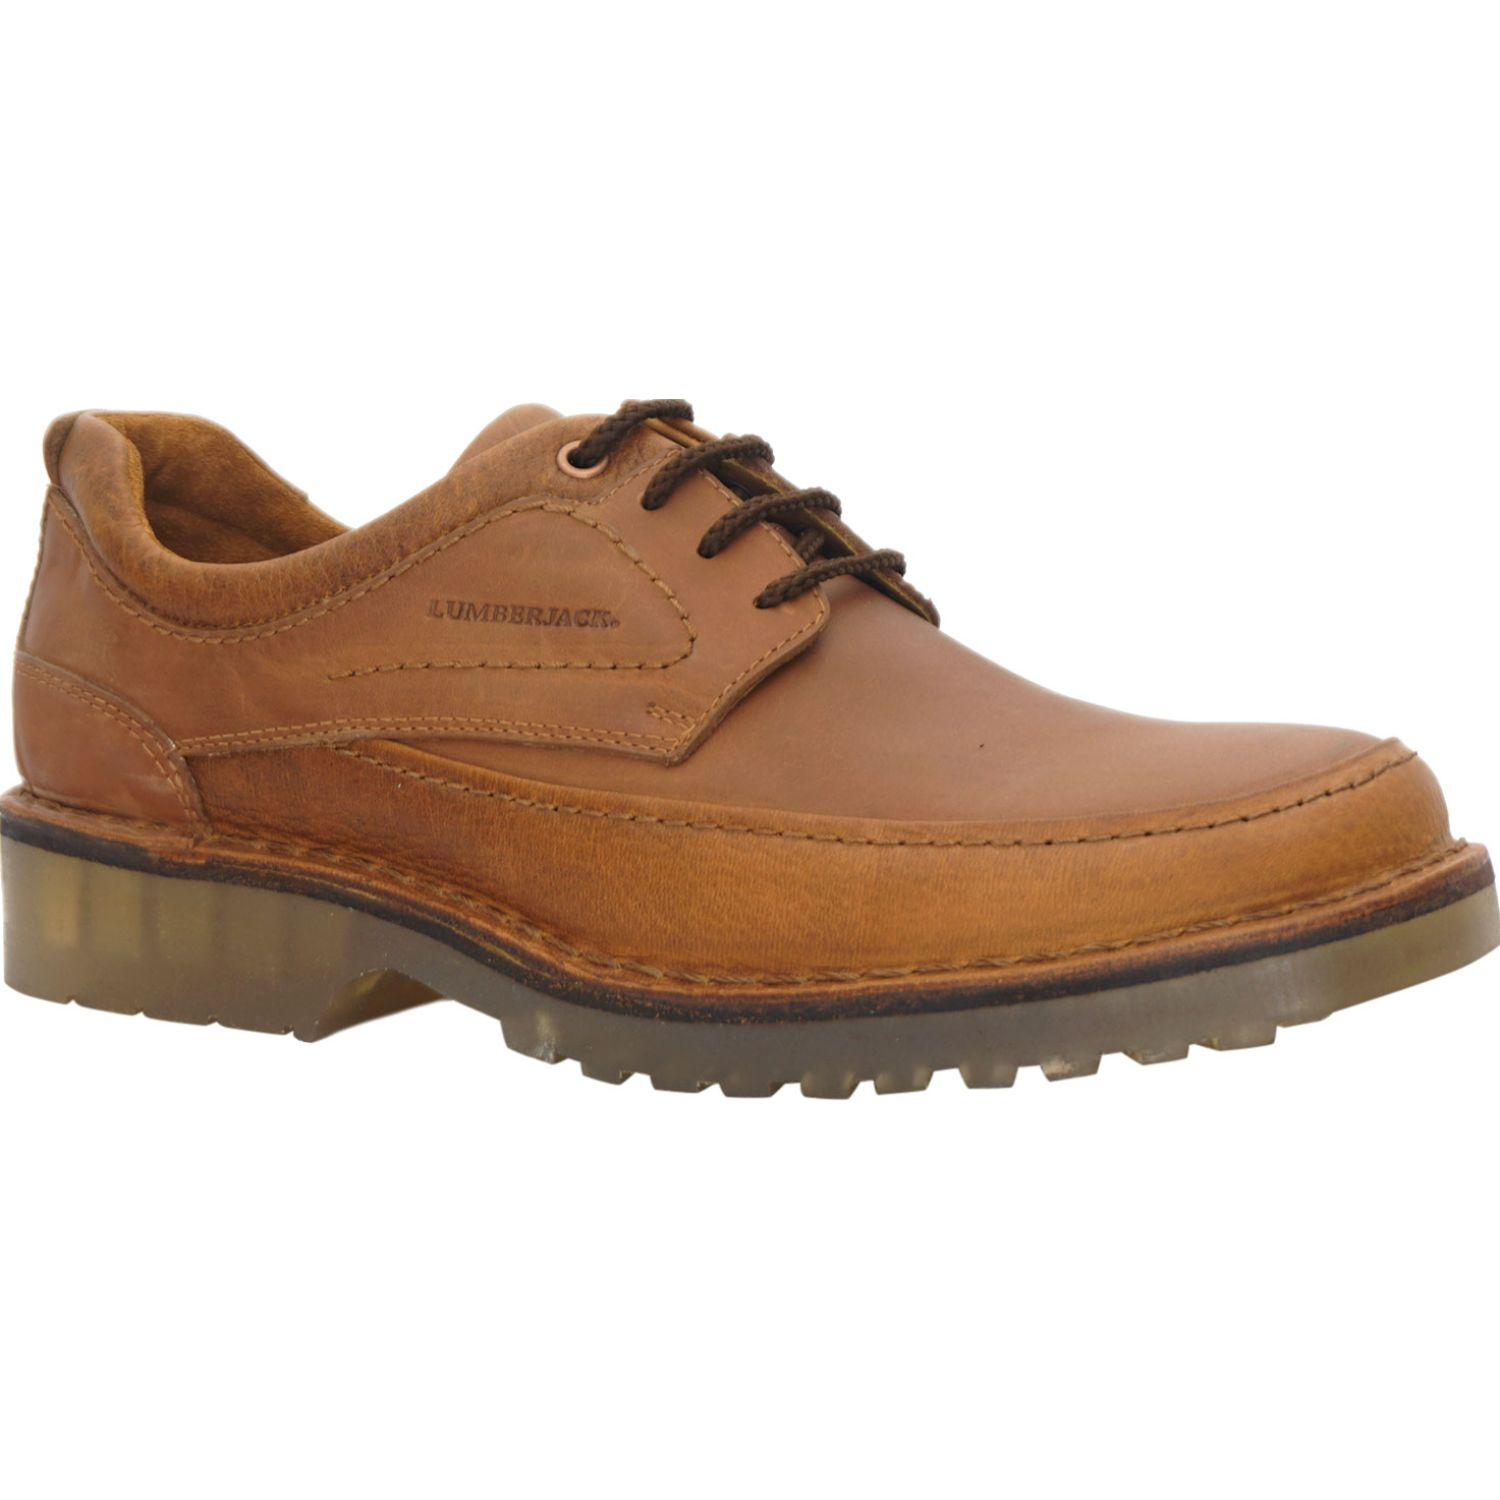 LumberJack 018387-L3 Cacao Oxfords